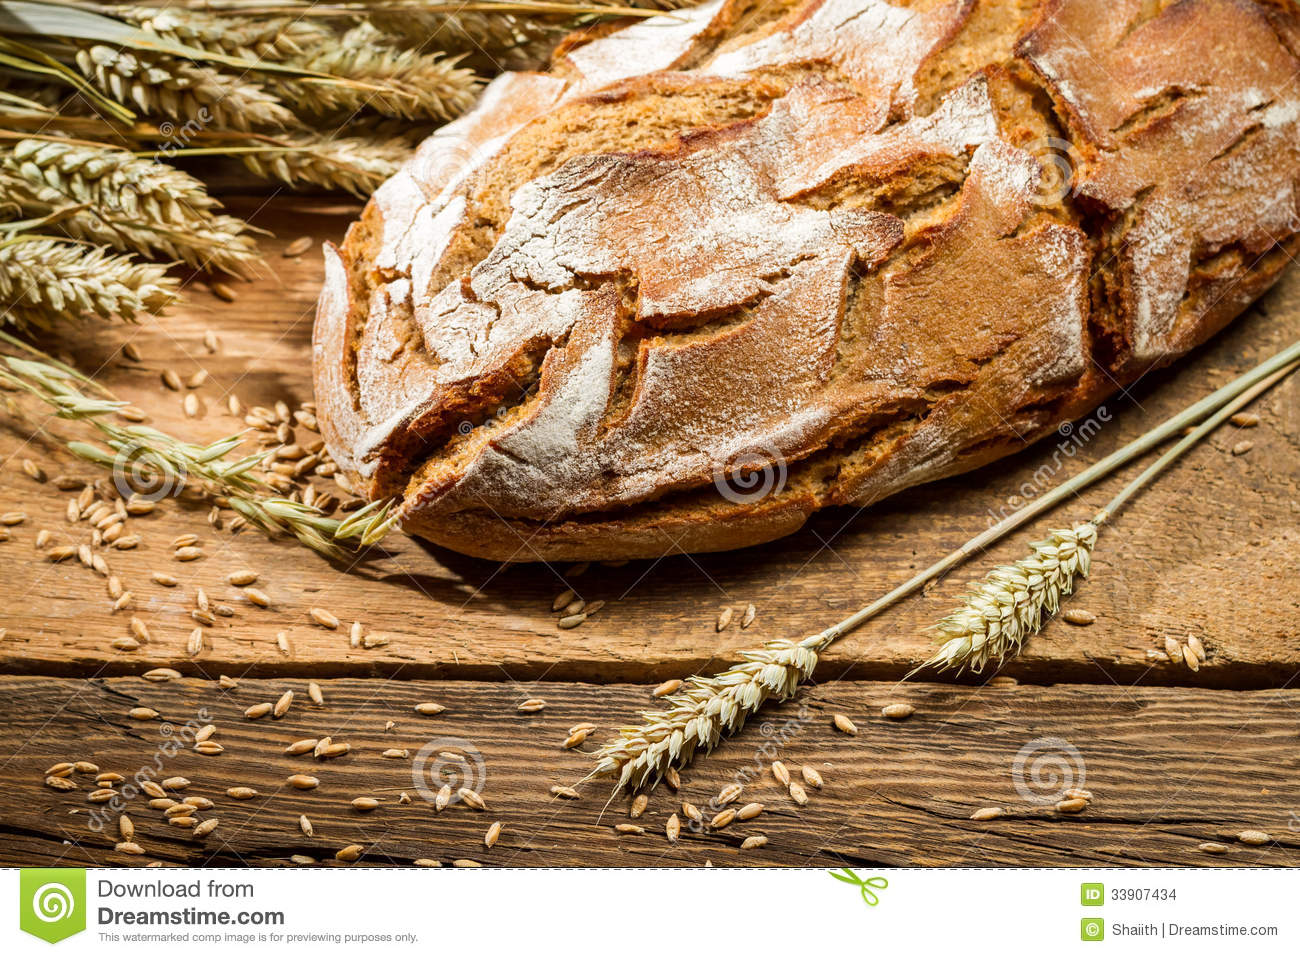 Loaf of bread in a rural bakery with wheat